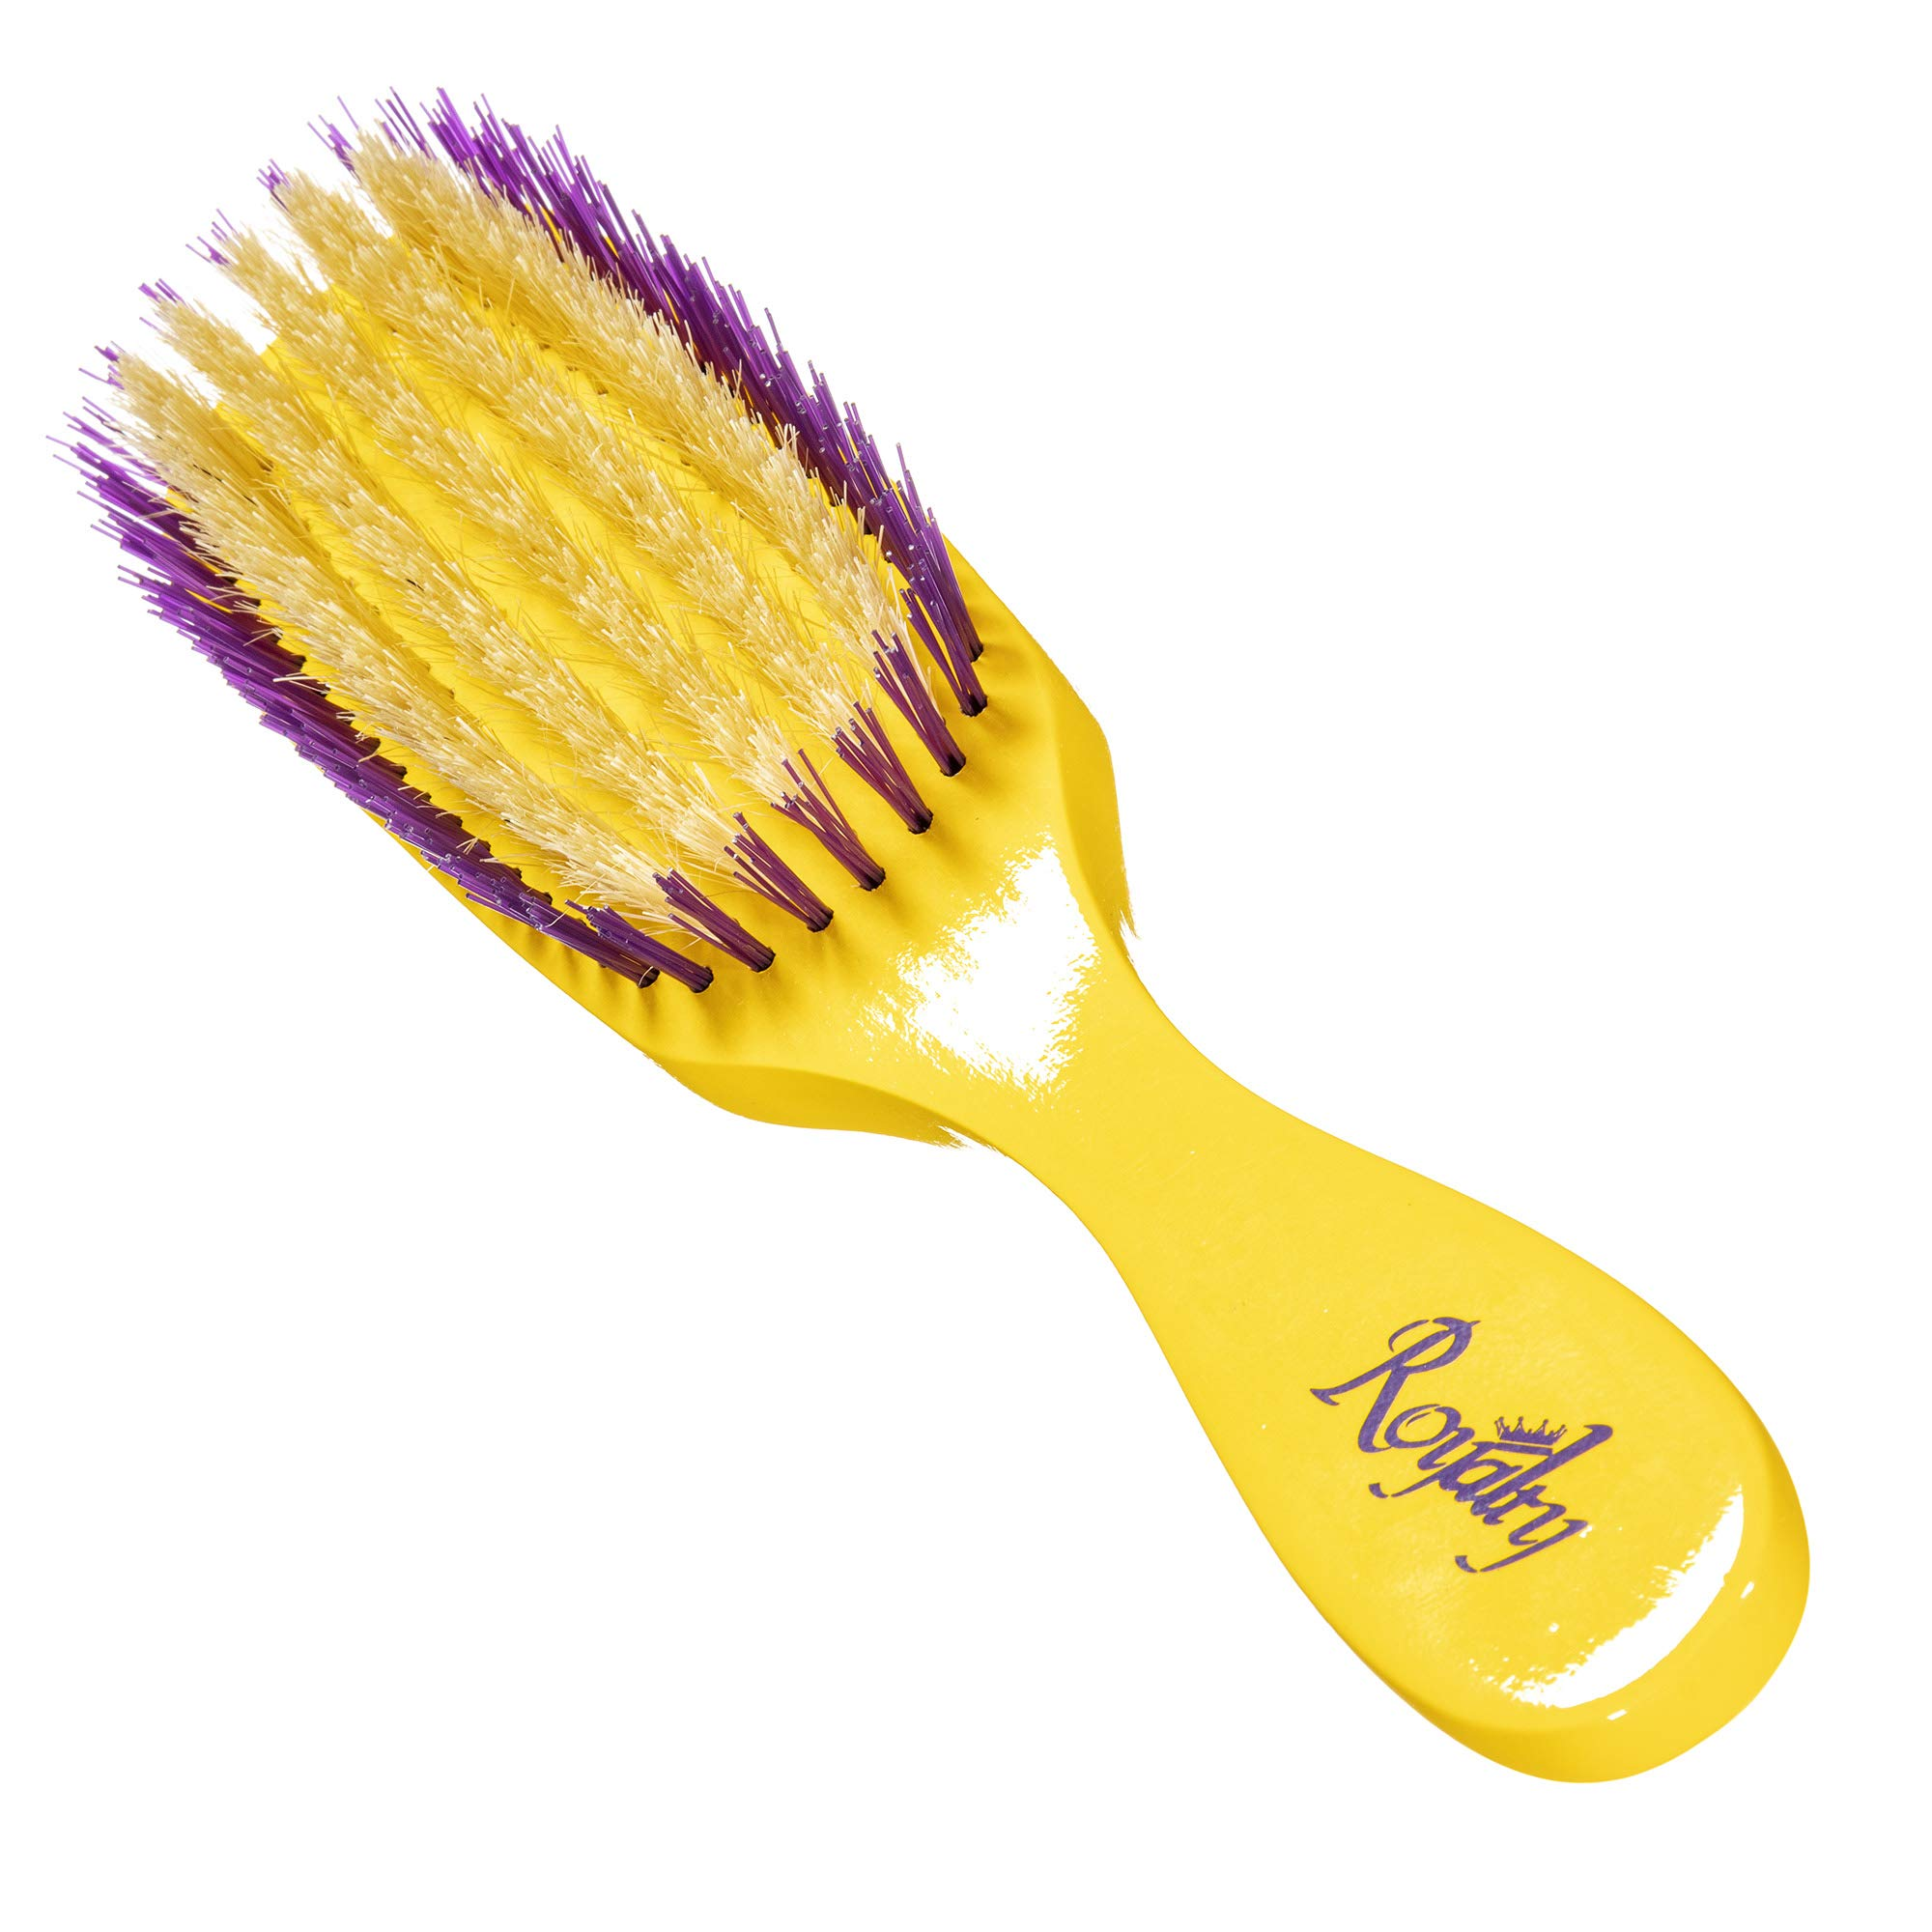 Royalty By Brush King Wave Brush #710- Reinforced Medium Waves Brush - From The Maker Of Torino Pro 360 Wave Brushes